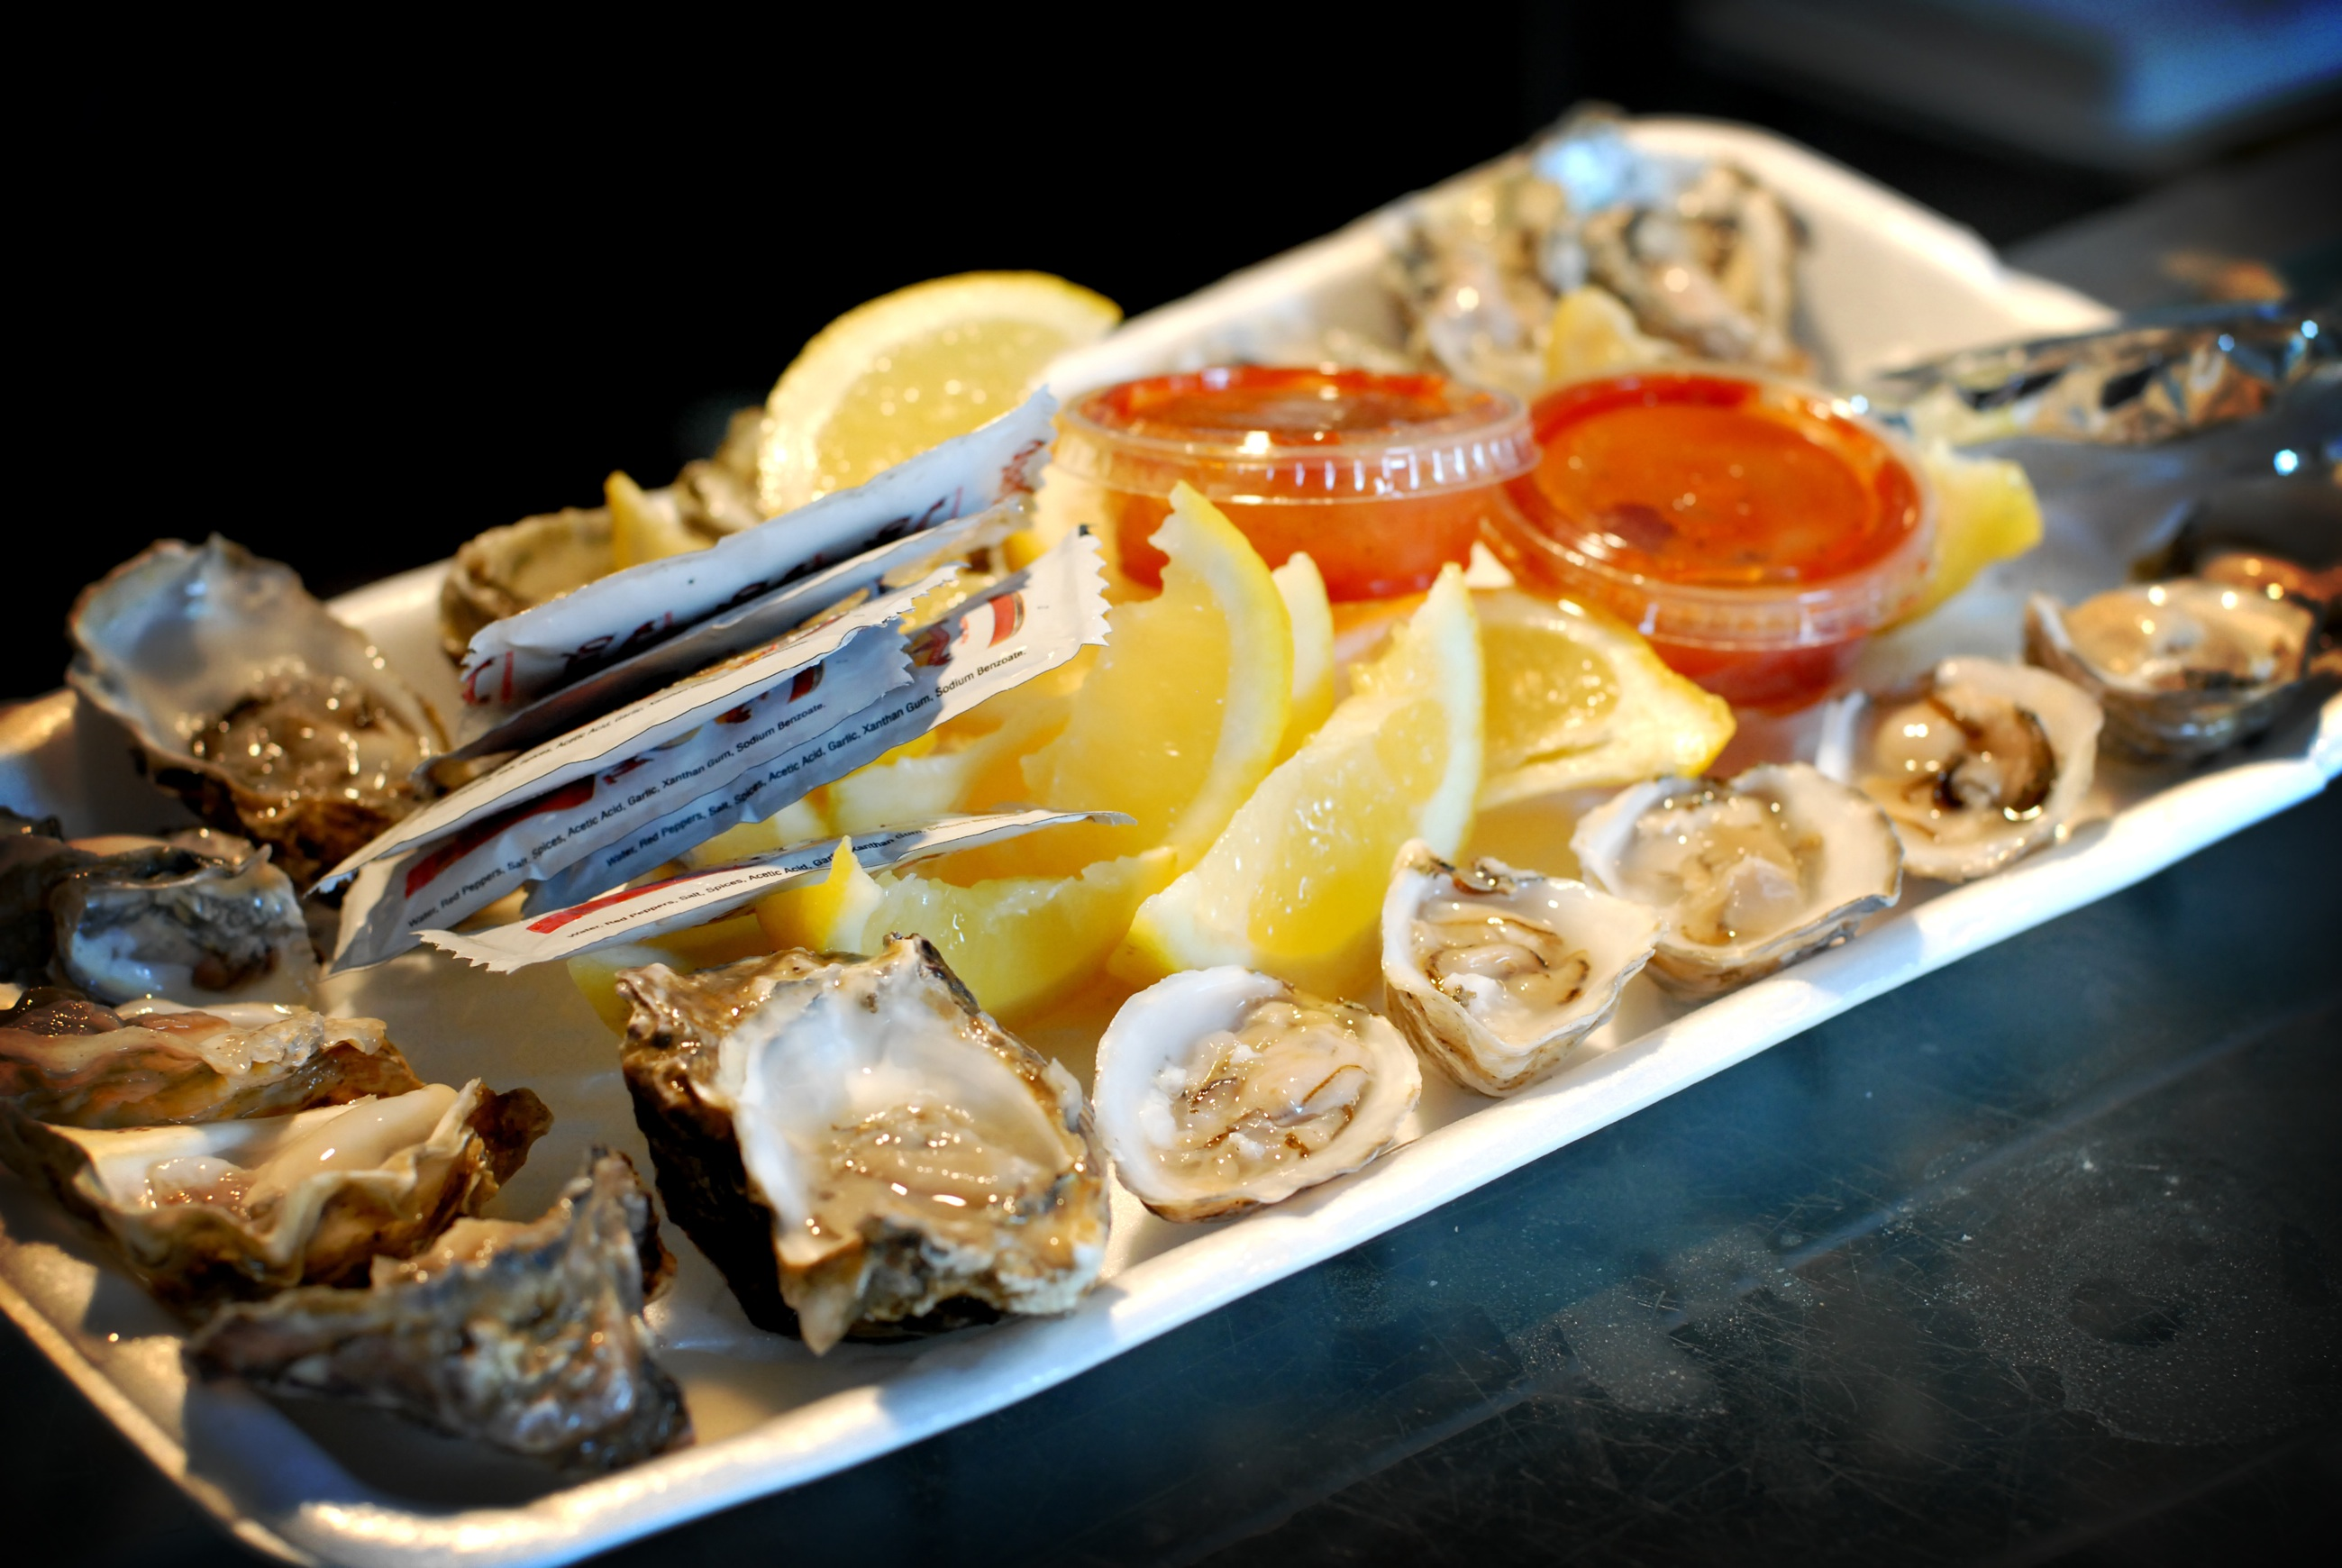 Oysters are delicious, healthy and good for the environment!